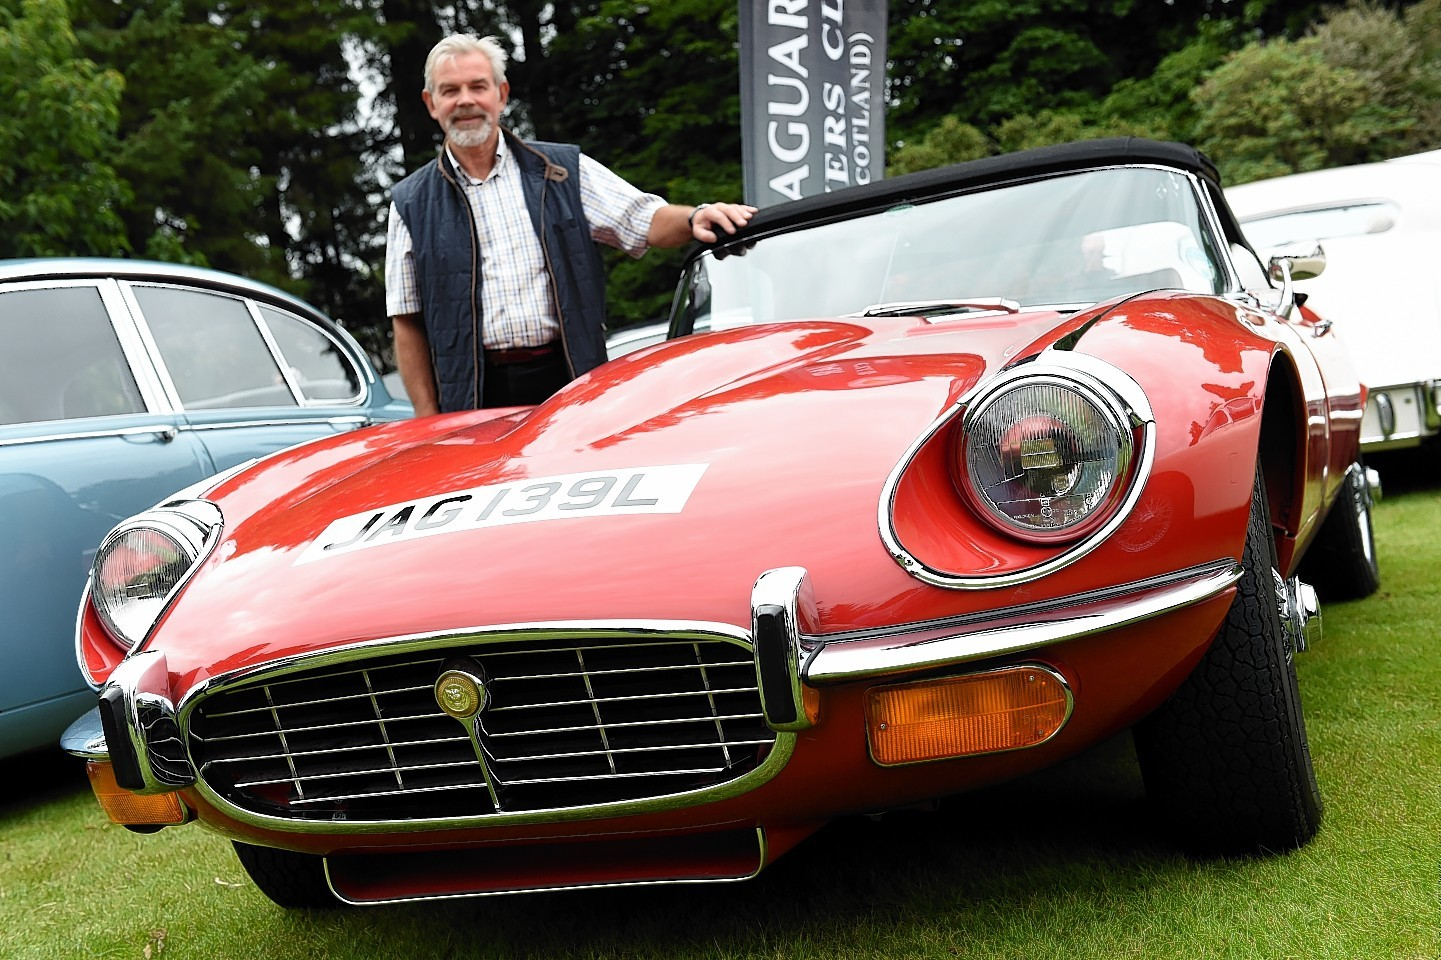 The Jaguar Enthusiasts Club, Grampian Region, Annual Gathering at Drum Castle, Drumoak, Aberdeenshire.      Pictured - Tom Taylor with his Jaguar series 3 E-type V12. Picture by Kami Thomson